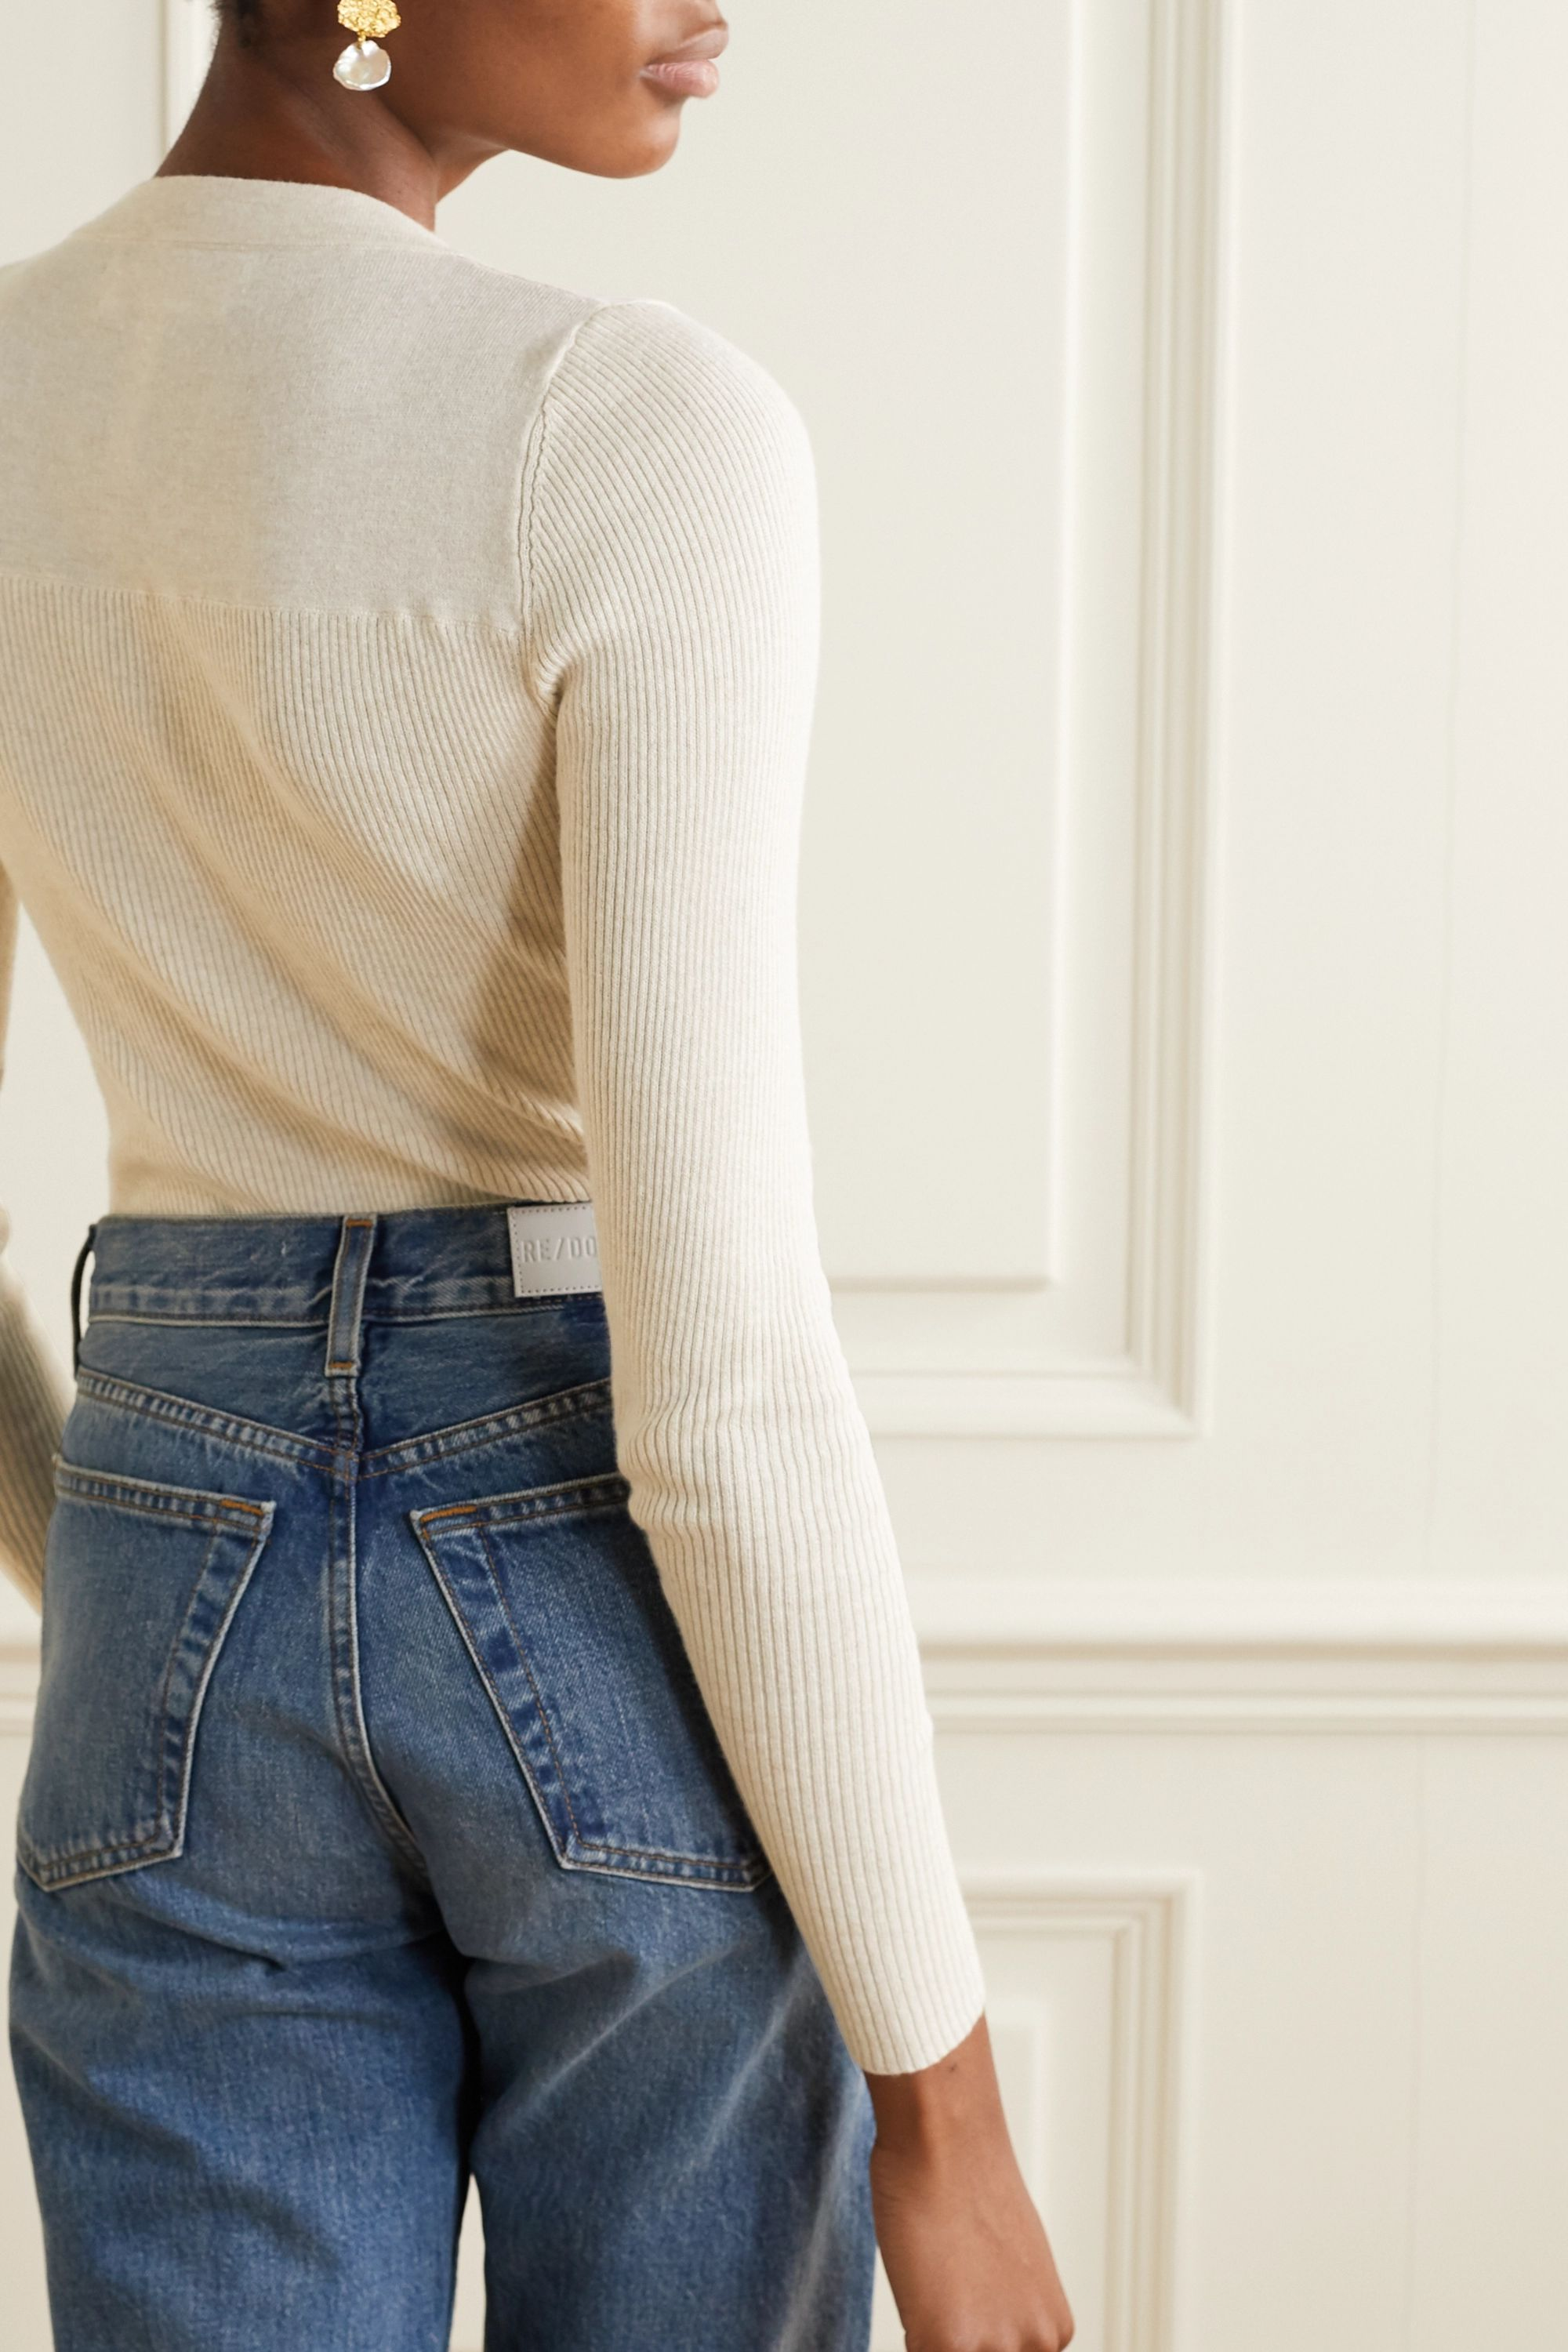 Rio ribbed cotton and cashmere blend sweater